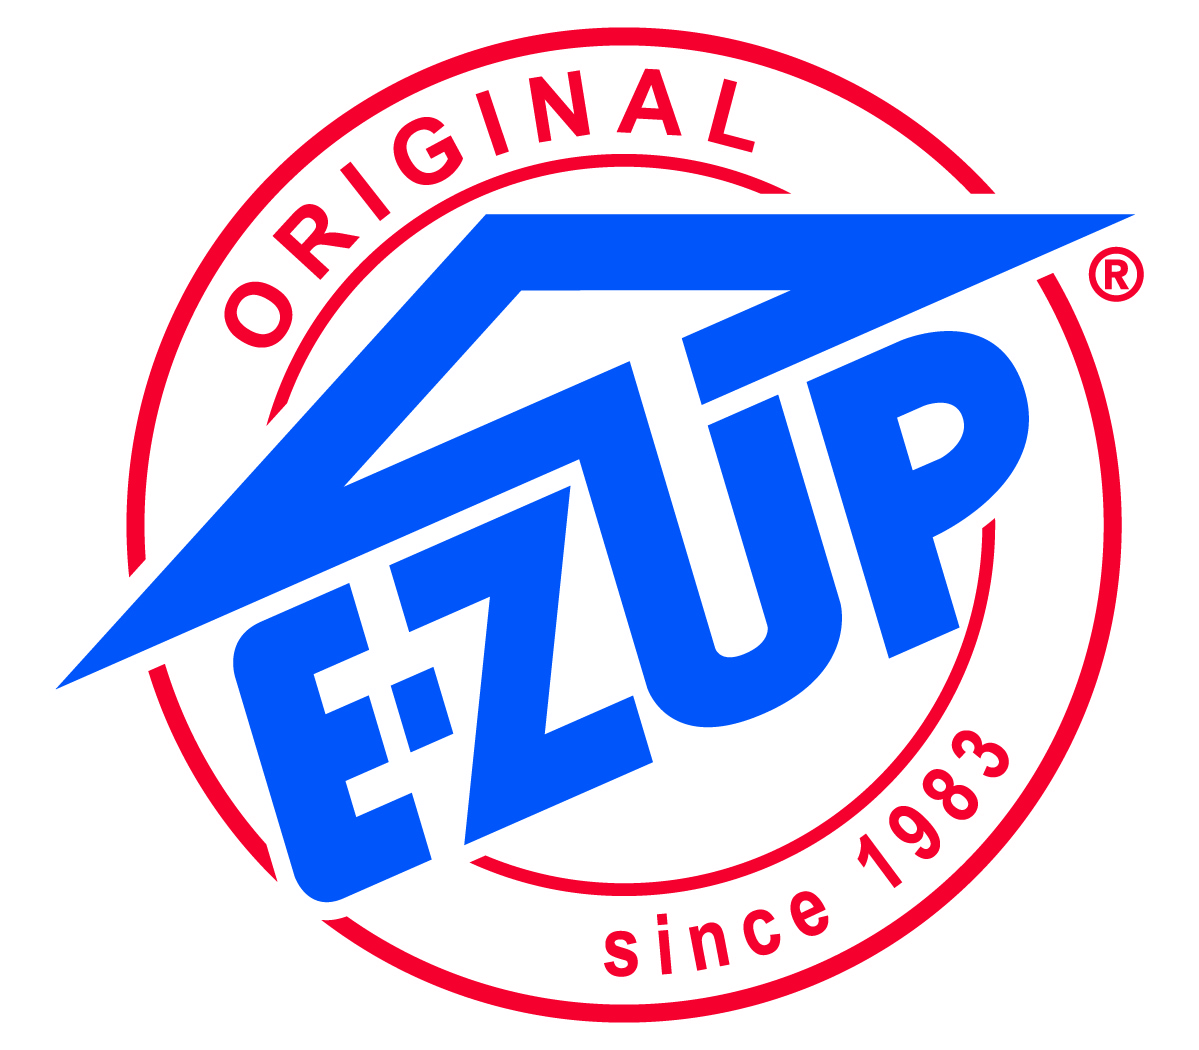 EZ UP Logo Wallpaper